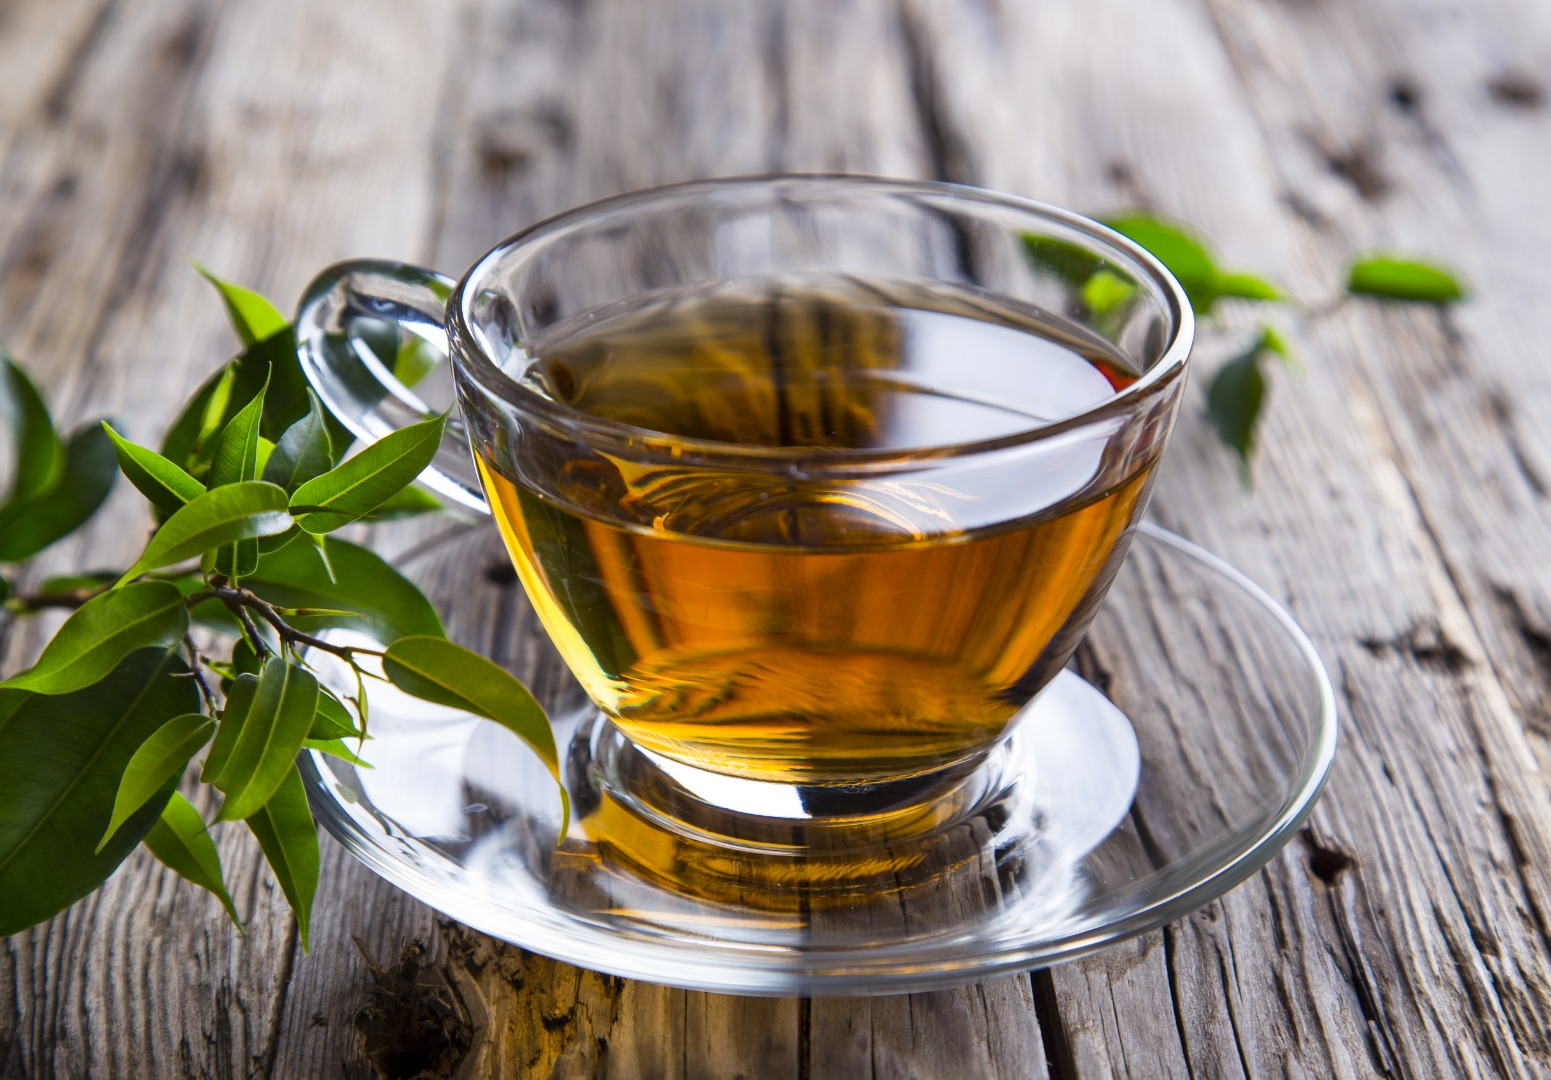 Green tea and carrot compounds found to reverse Alzheimer's symptoms in mice